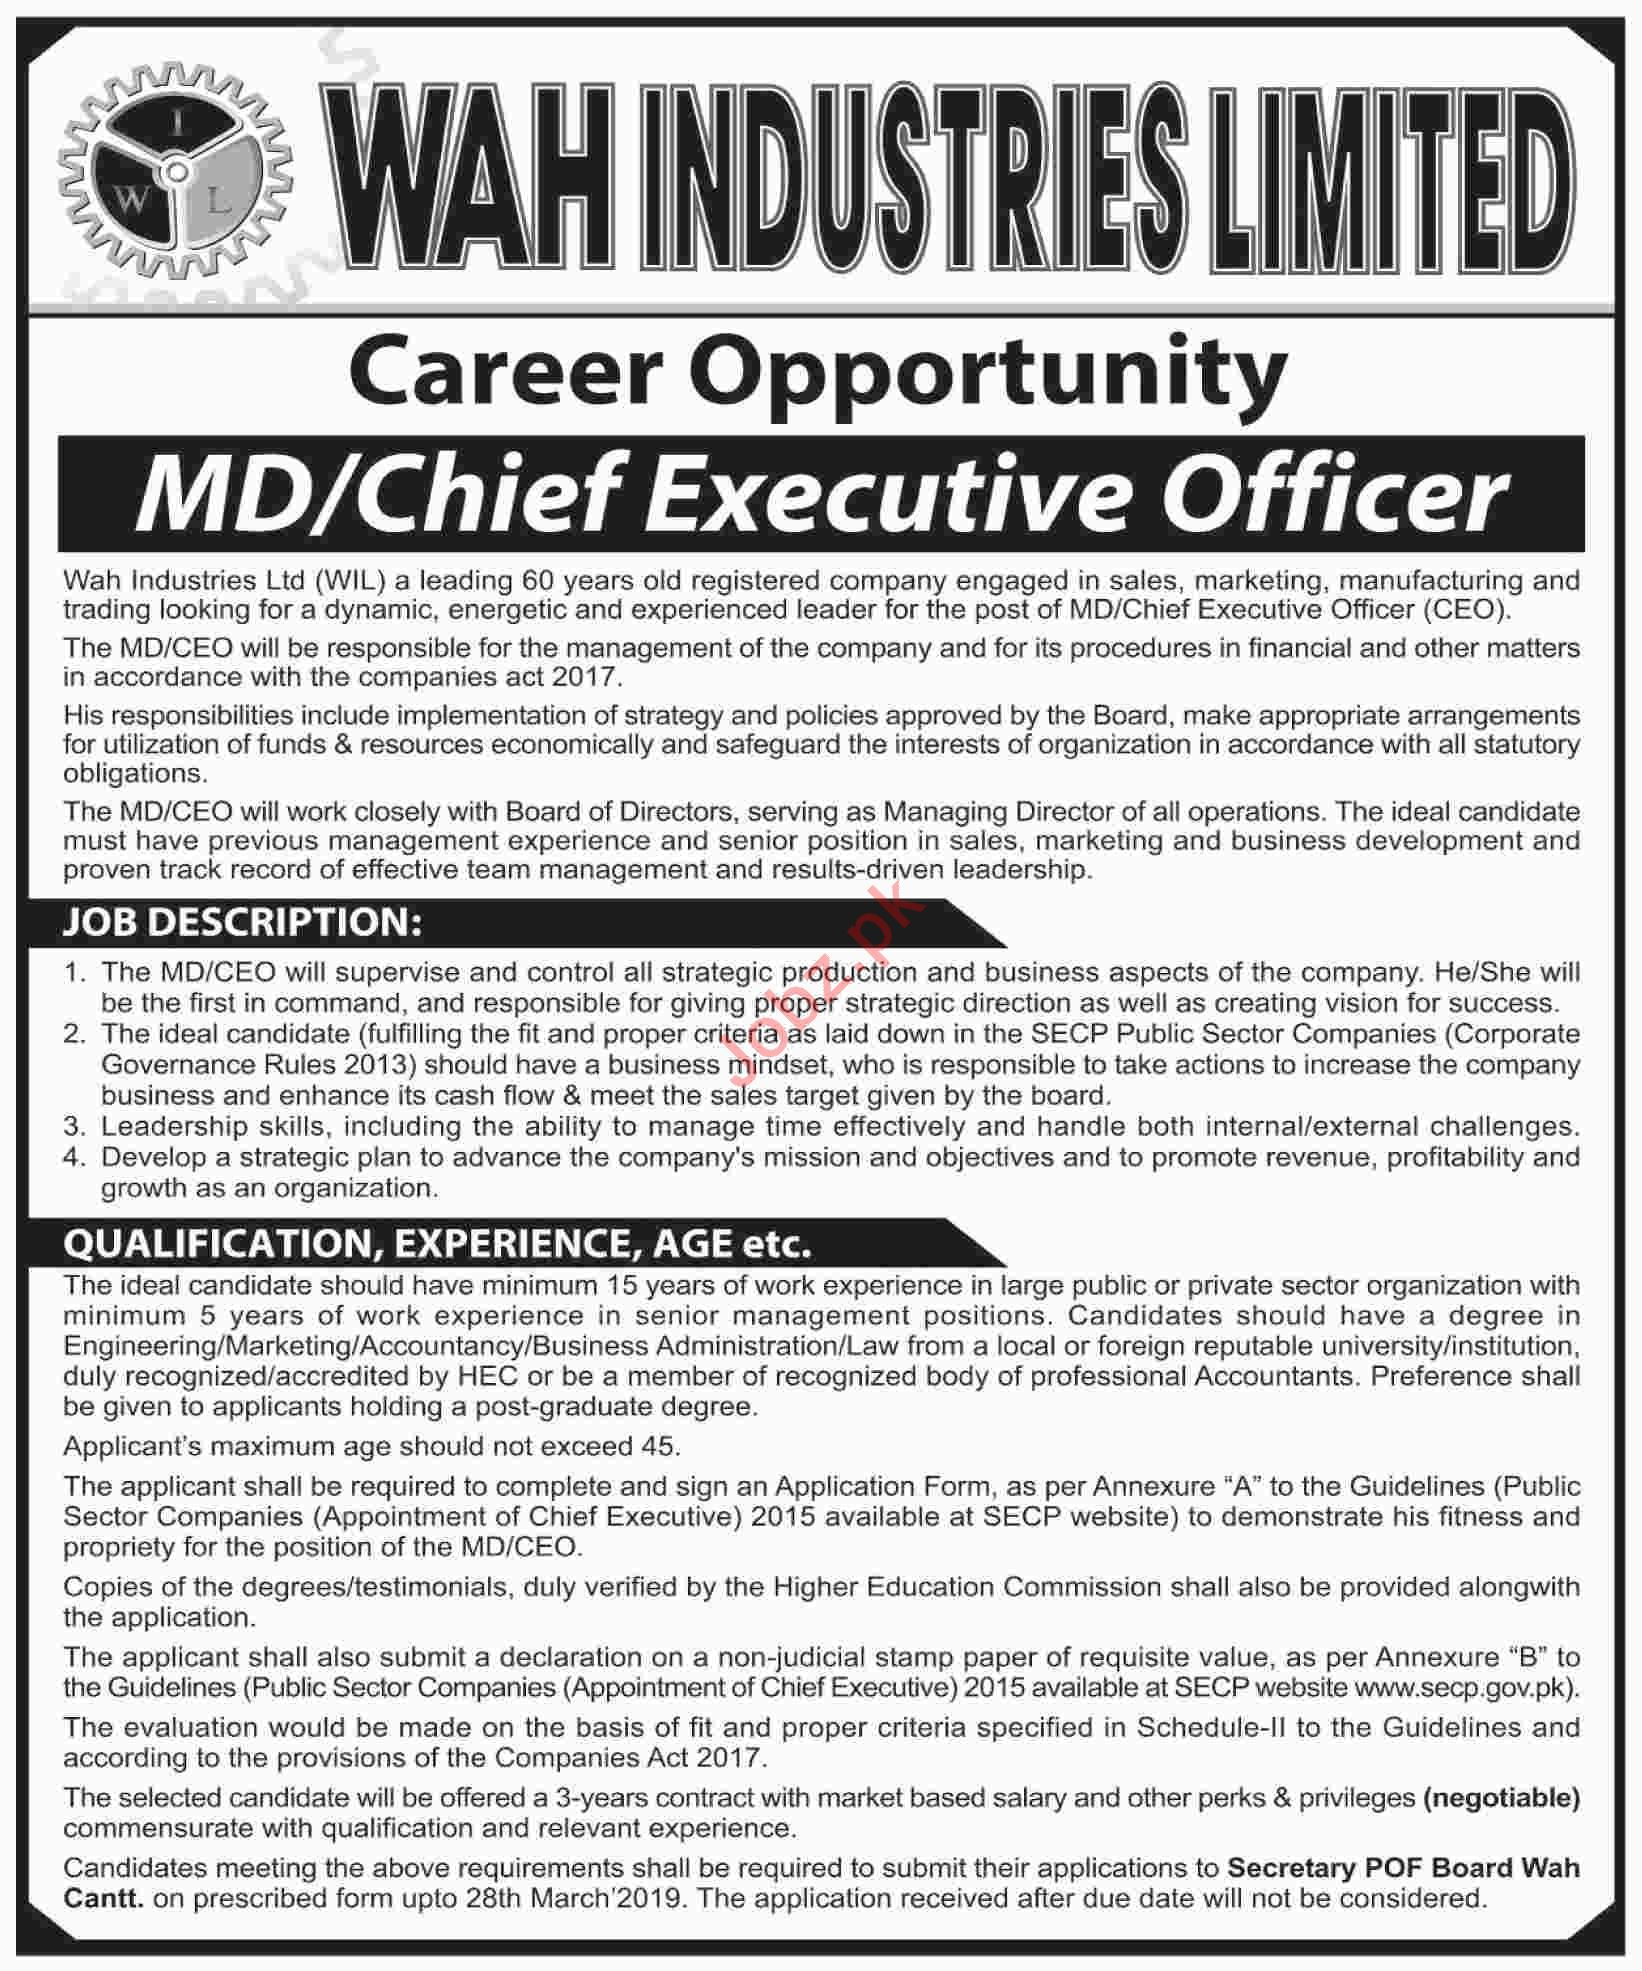 Wah Industries Limited WIL Jobs 2019 Chief Executive Officer